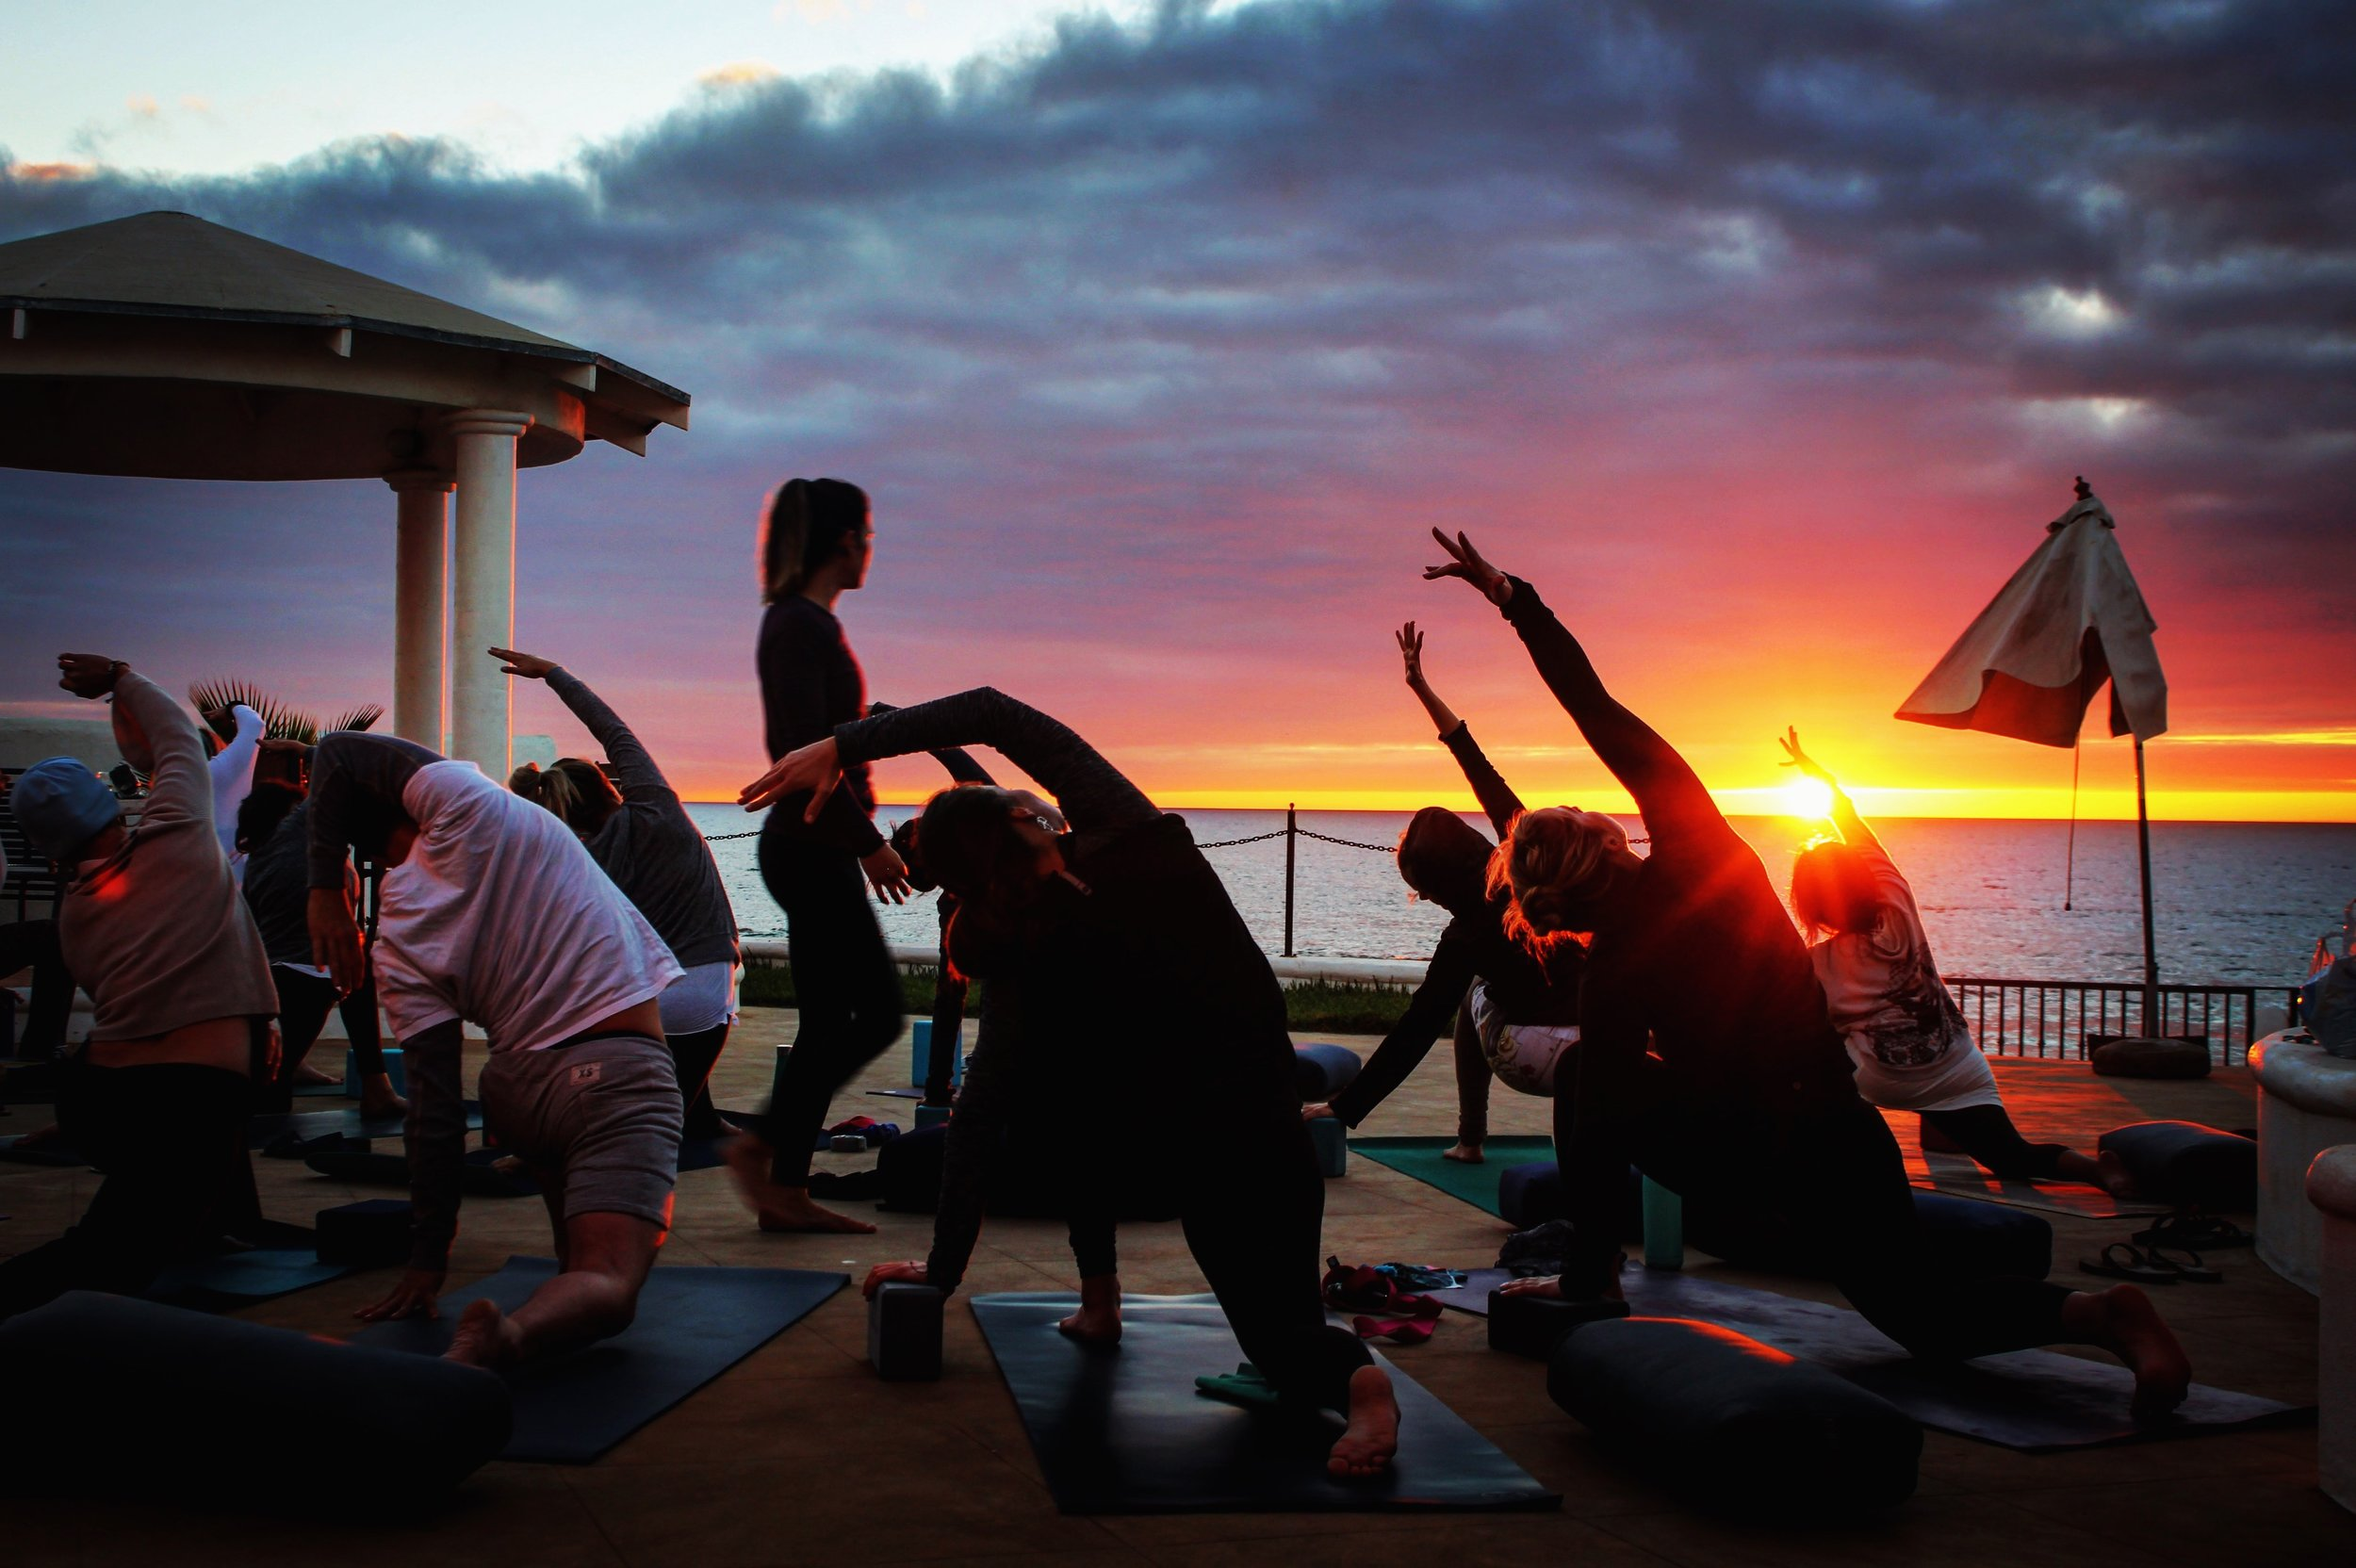 Watching the sunset during our first yoga practice at our home &studio in Baja, Mexico.